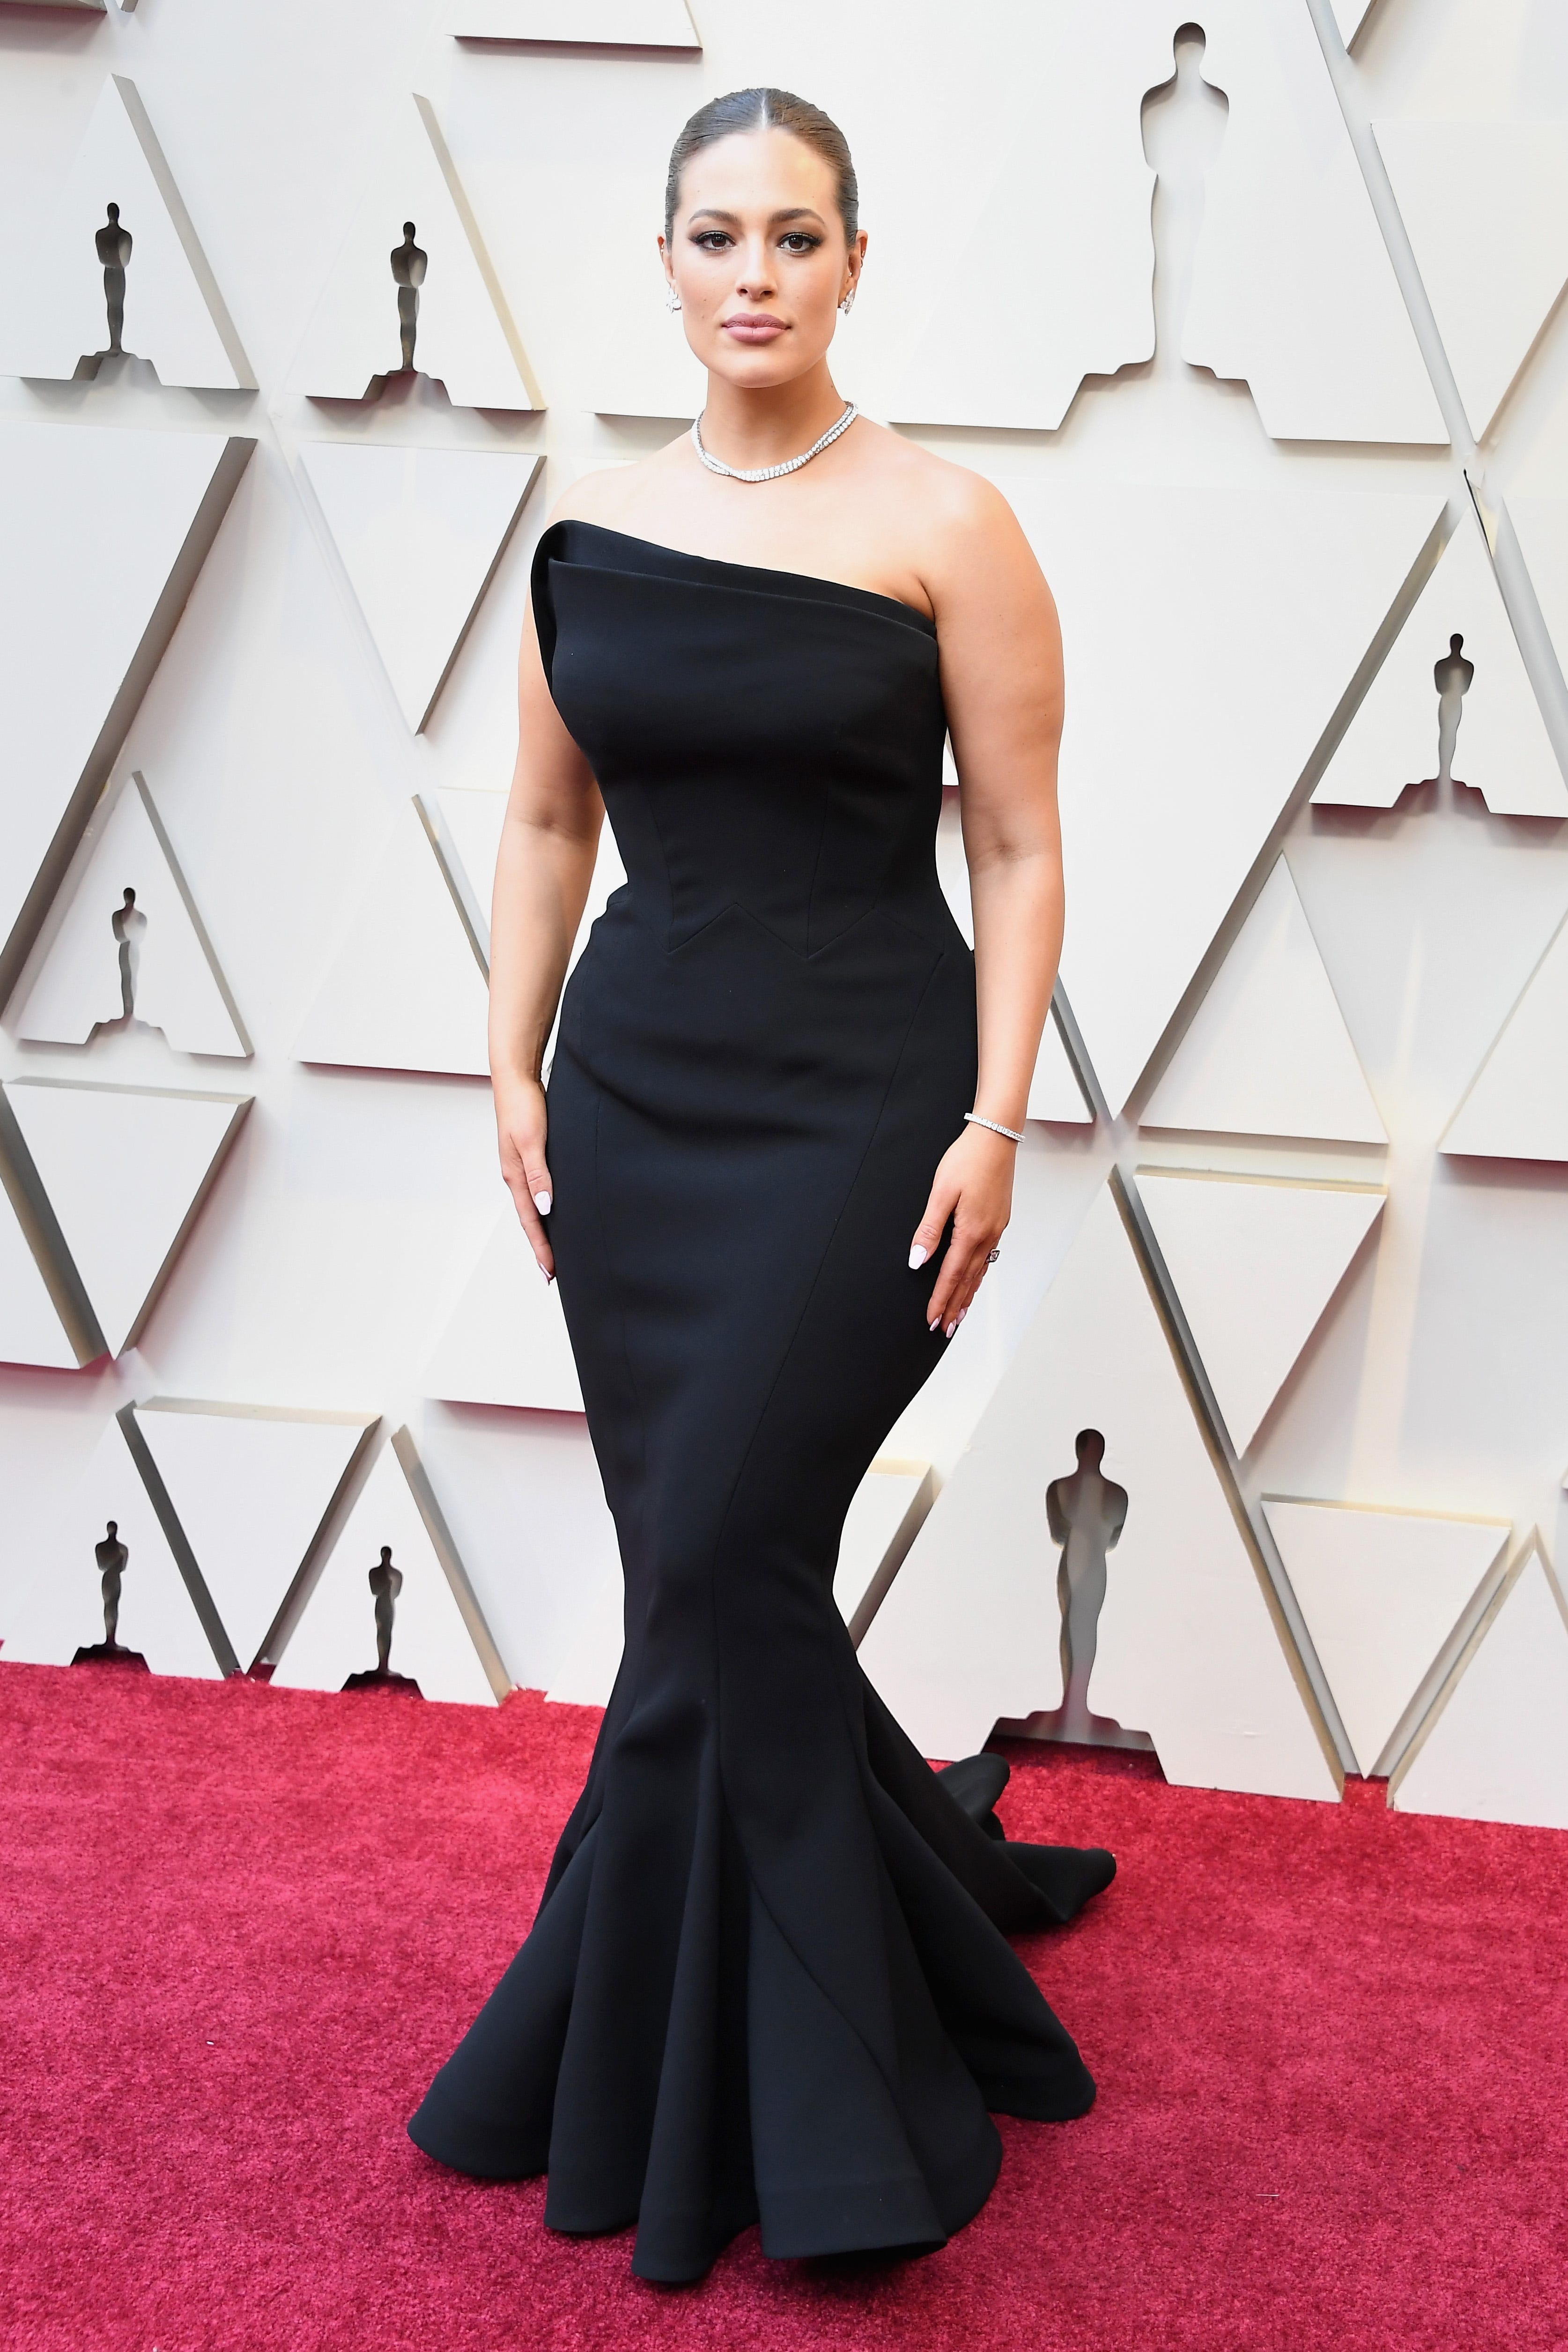 246694d801 Oscars 2019 Best Dressed Celebrities On The Red Carpet